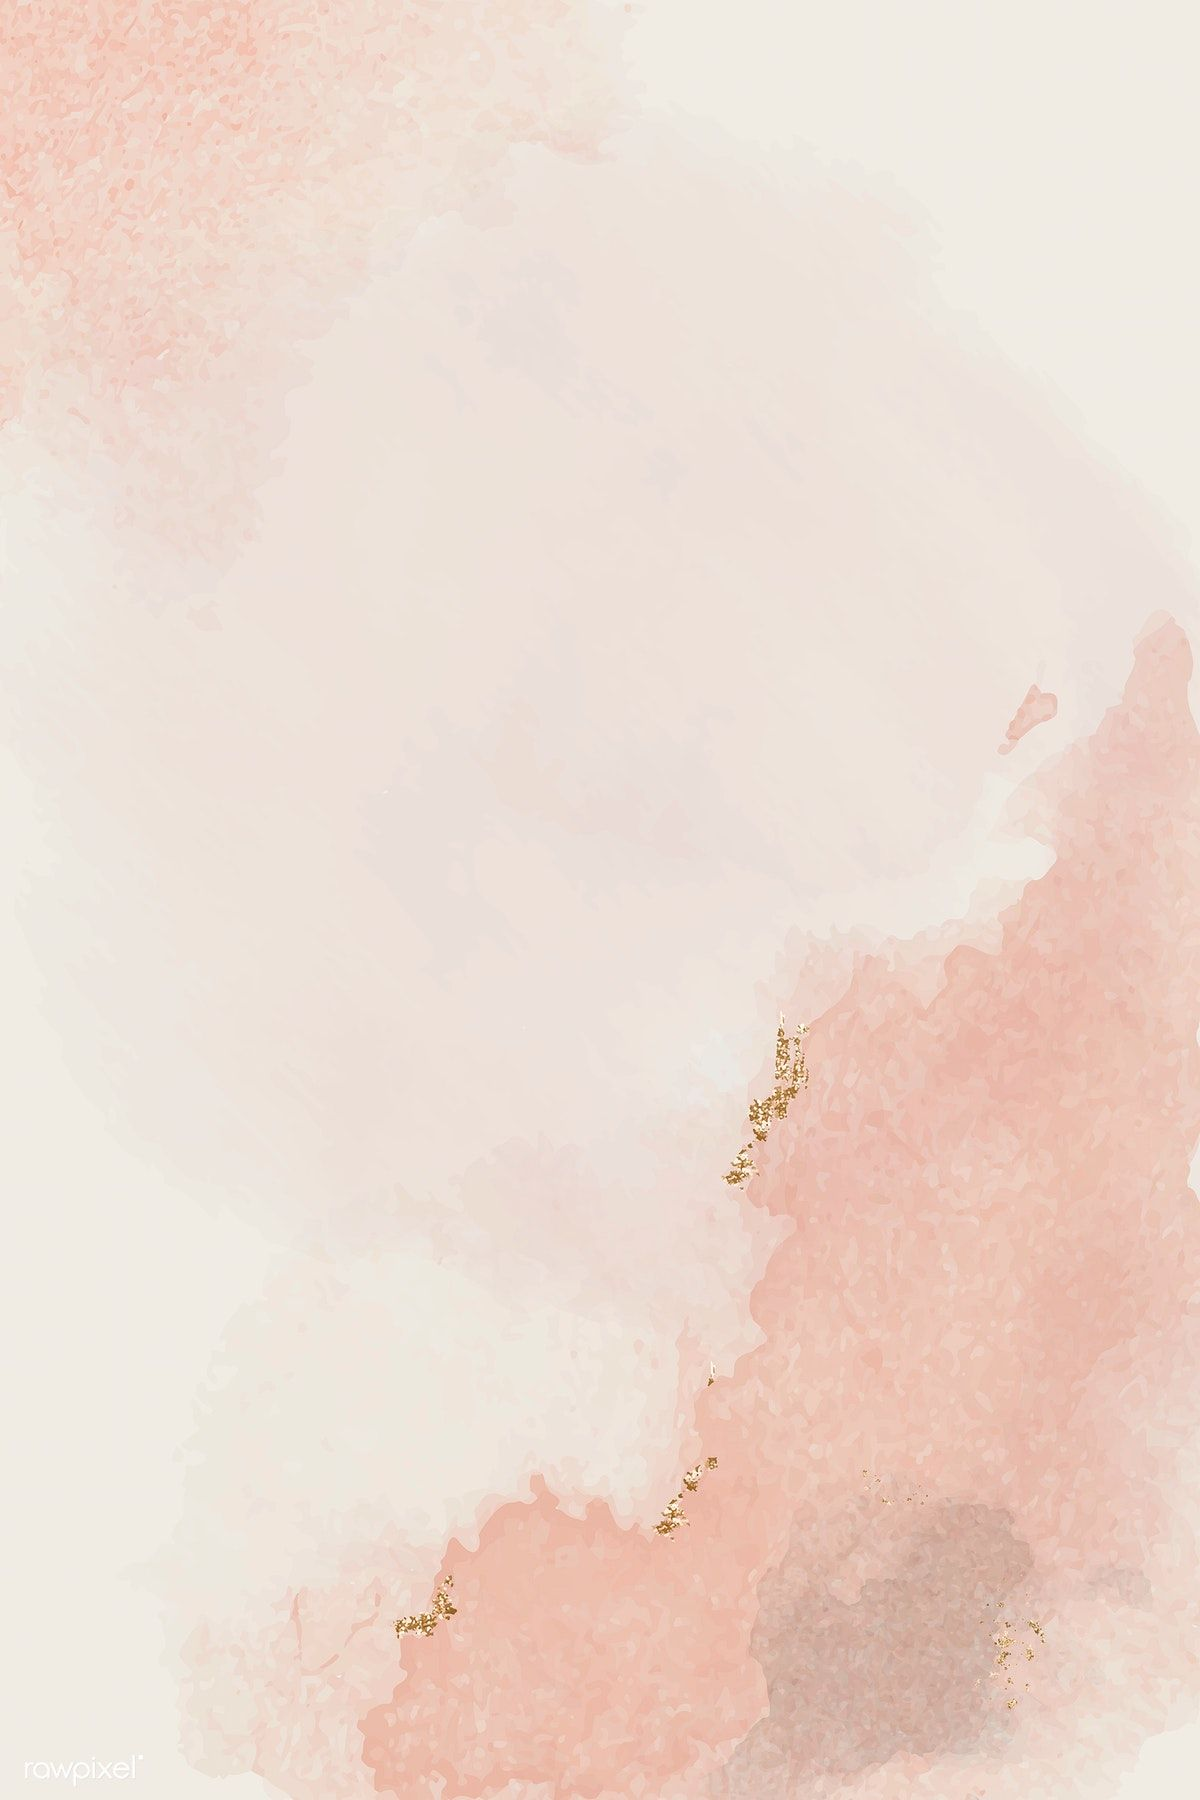 Download premium illustration of Pink smudge background design vector by marinemynt about shimmer, watercolor, glitter, shining and backdrop 1201227